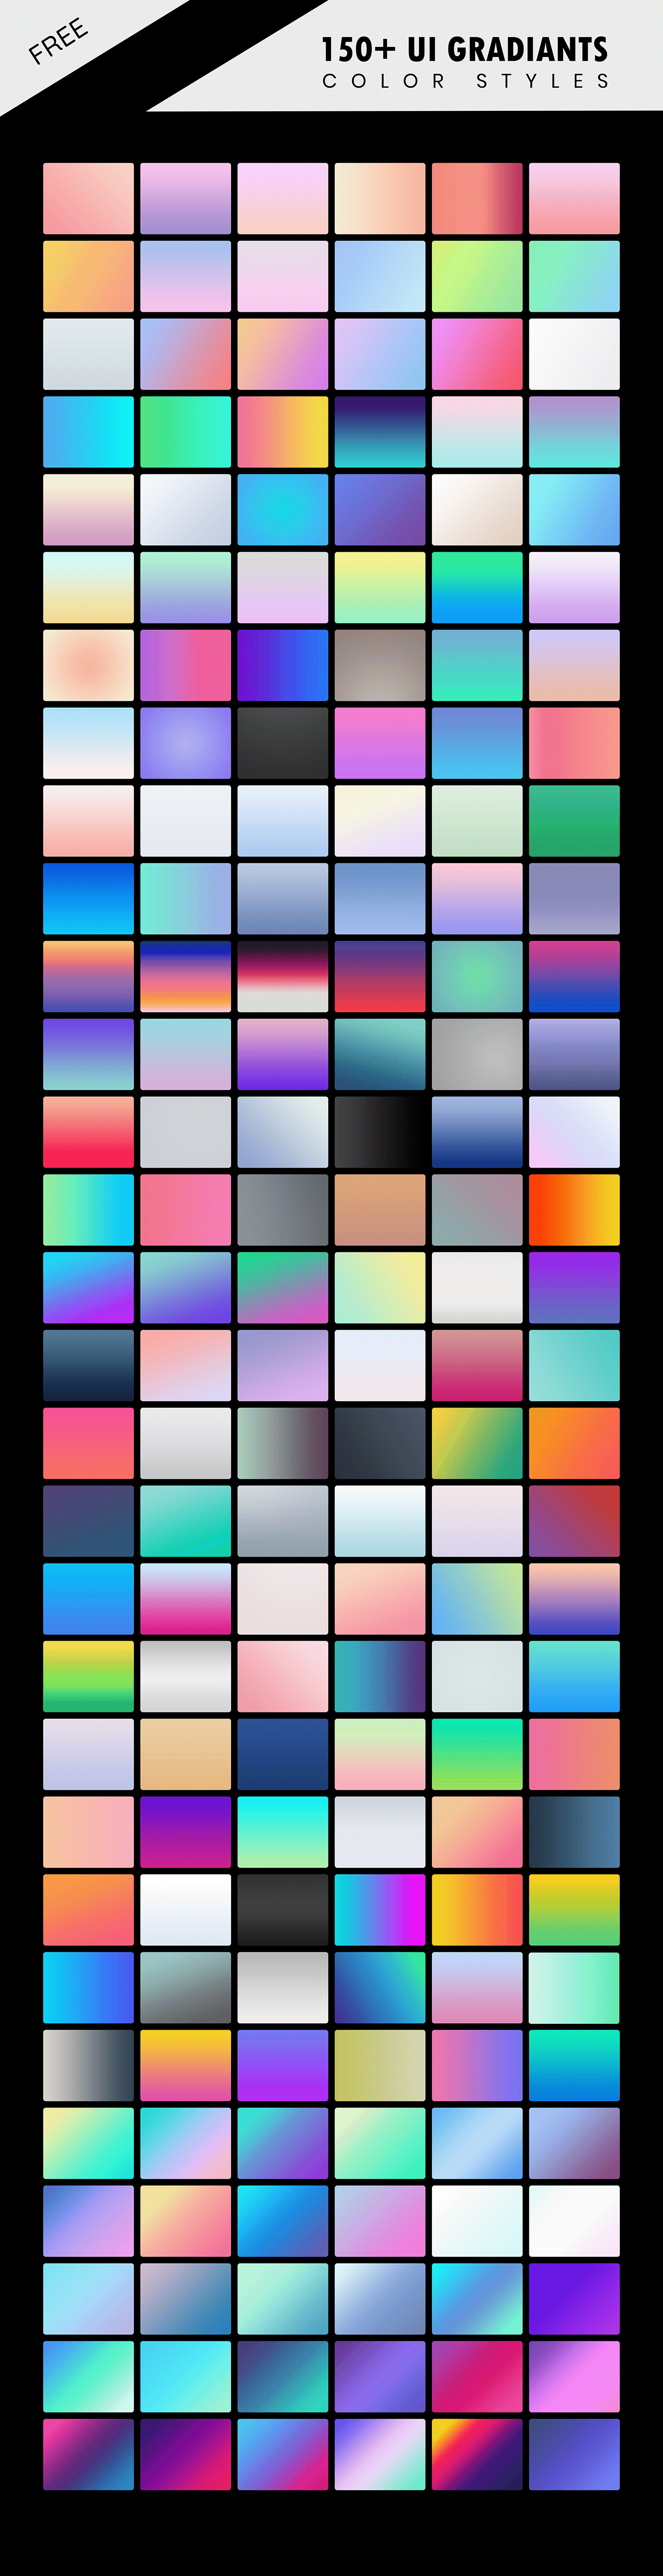 Free 150+ UI Gradients Color Styles